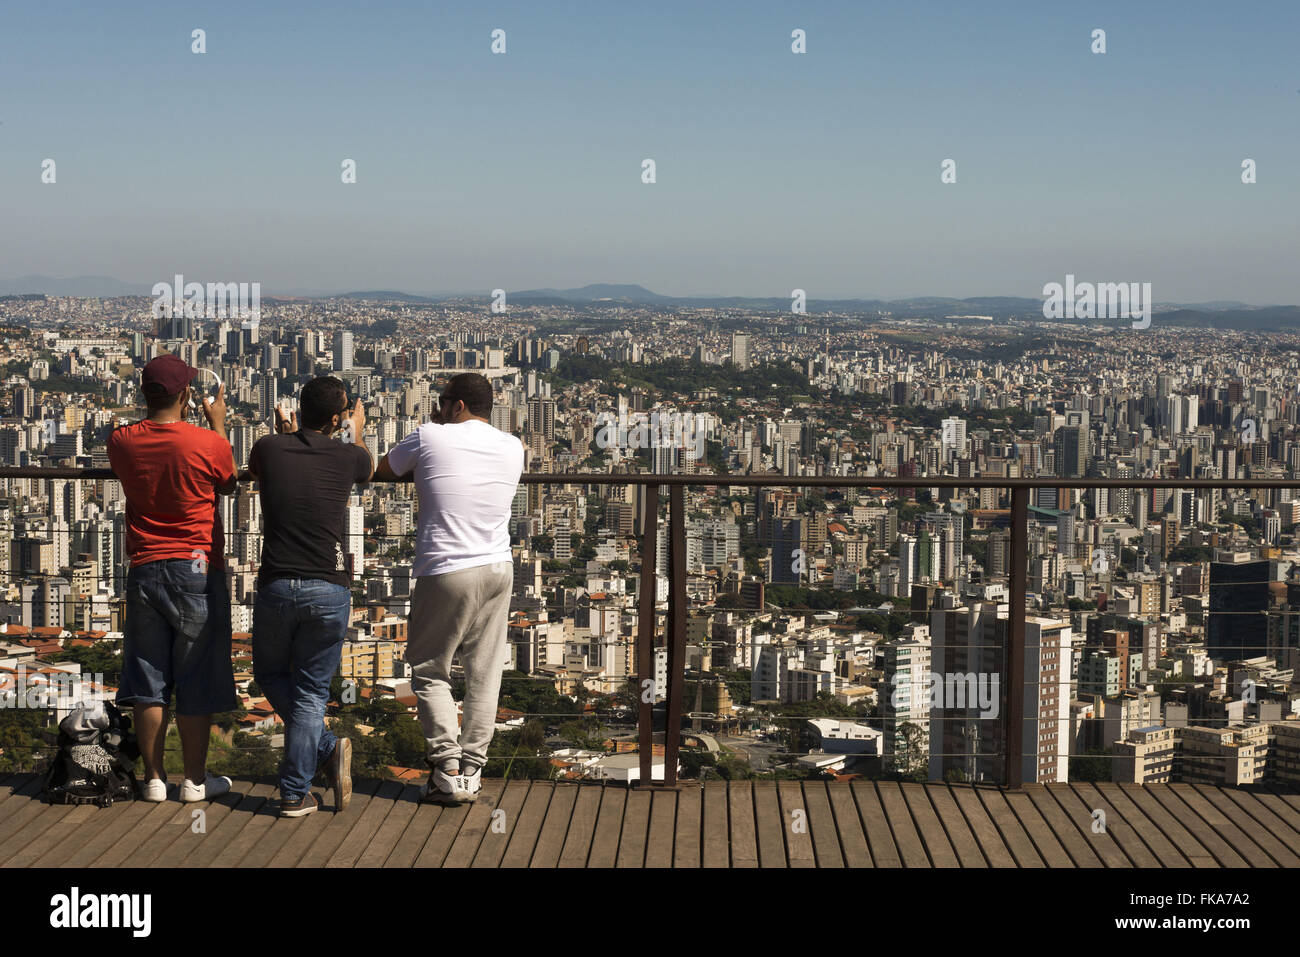 People contemplating the view of the city from Lookout Mangabeiras - Stock Image